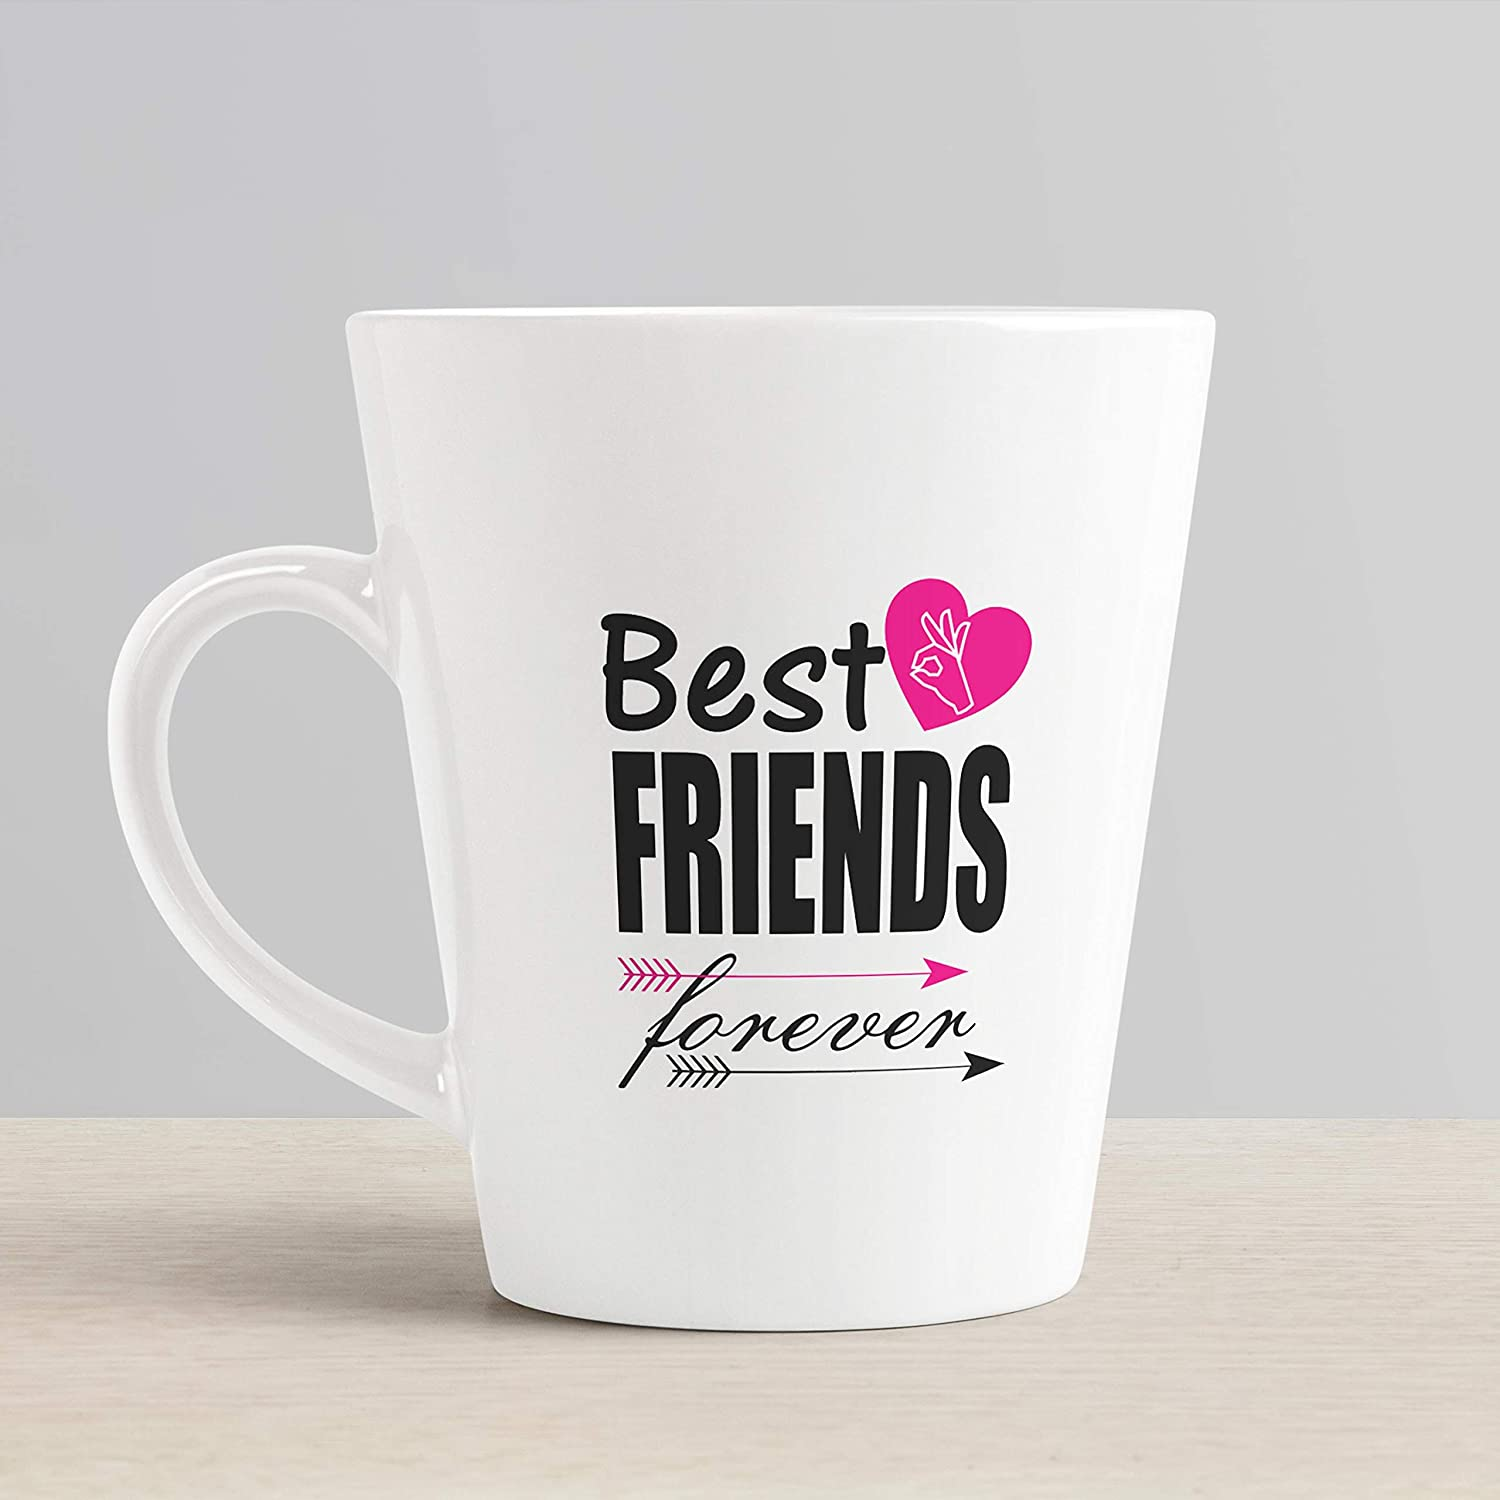 Buy Ikraft Friendship Quotes Conical Coffee Mug Best Friends Forever Printed Tea Cup Gift For Best Friend Online At Low Prices In India Amazon In